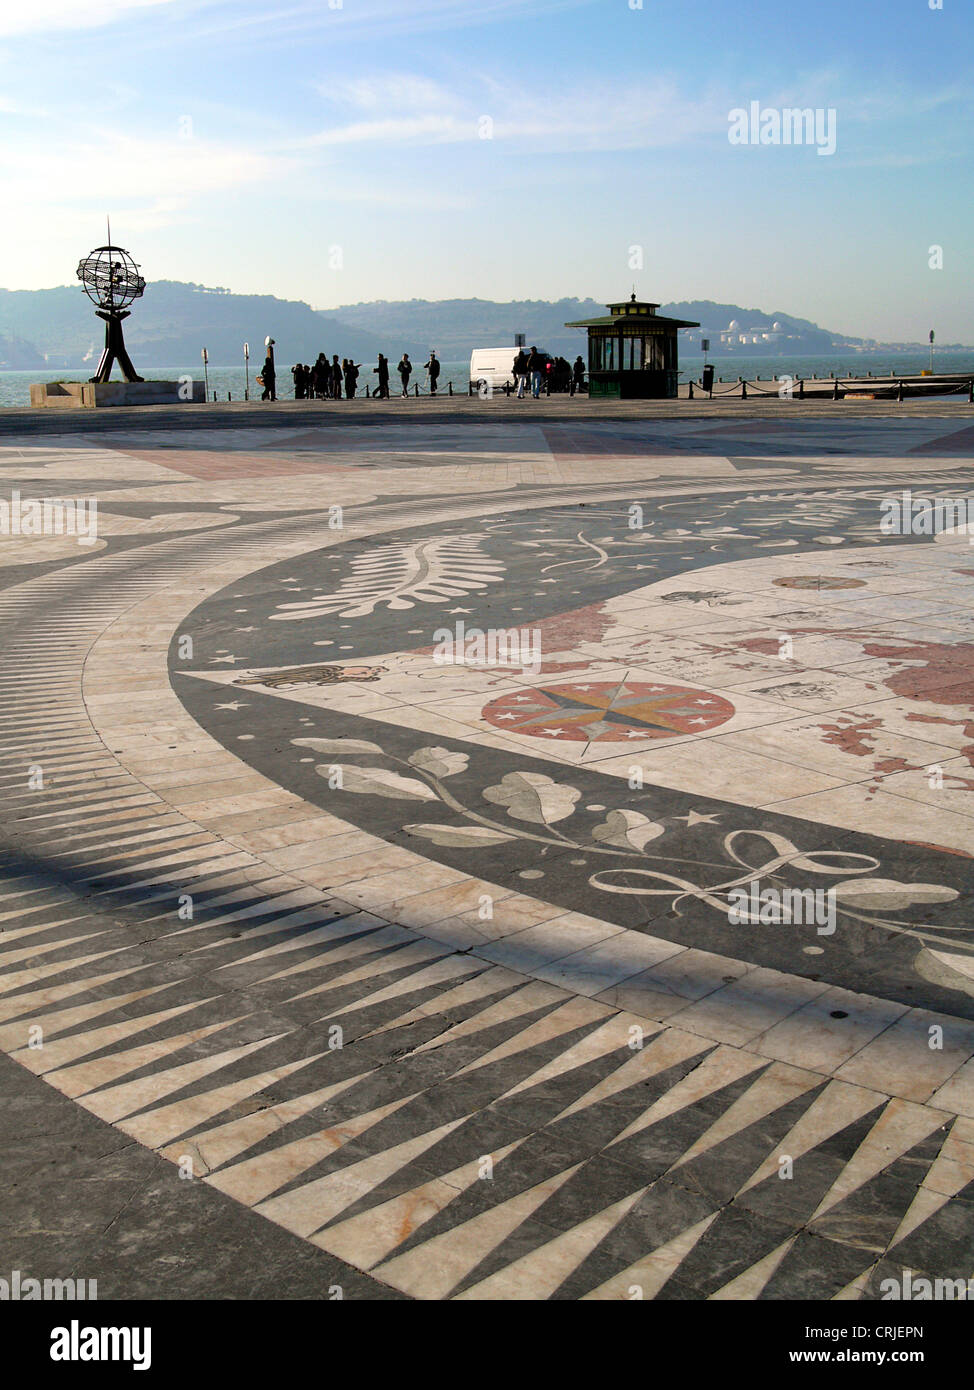 memorial place in Bel�m for the famous explorers who set off on their voyages of discovery from here, Portugal, - Stock Image